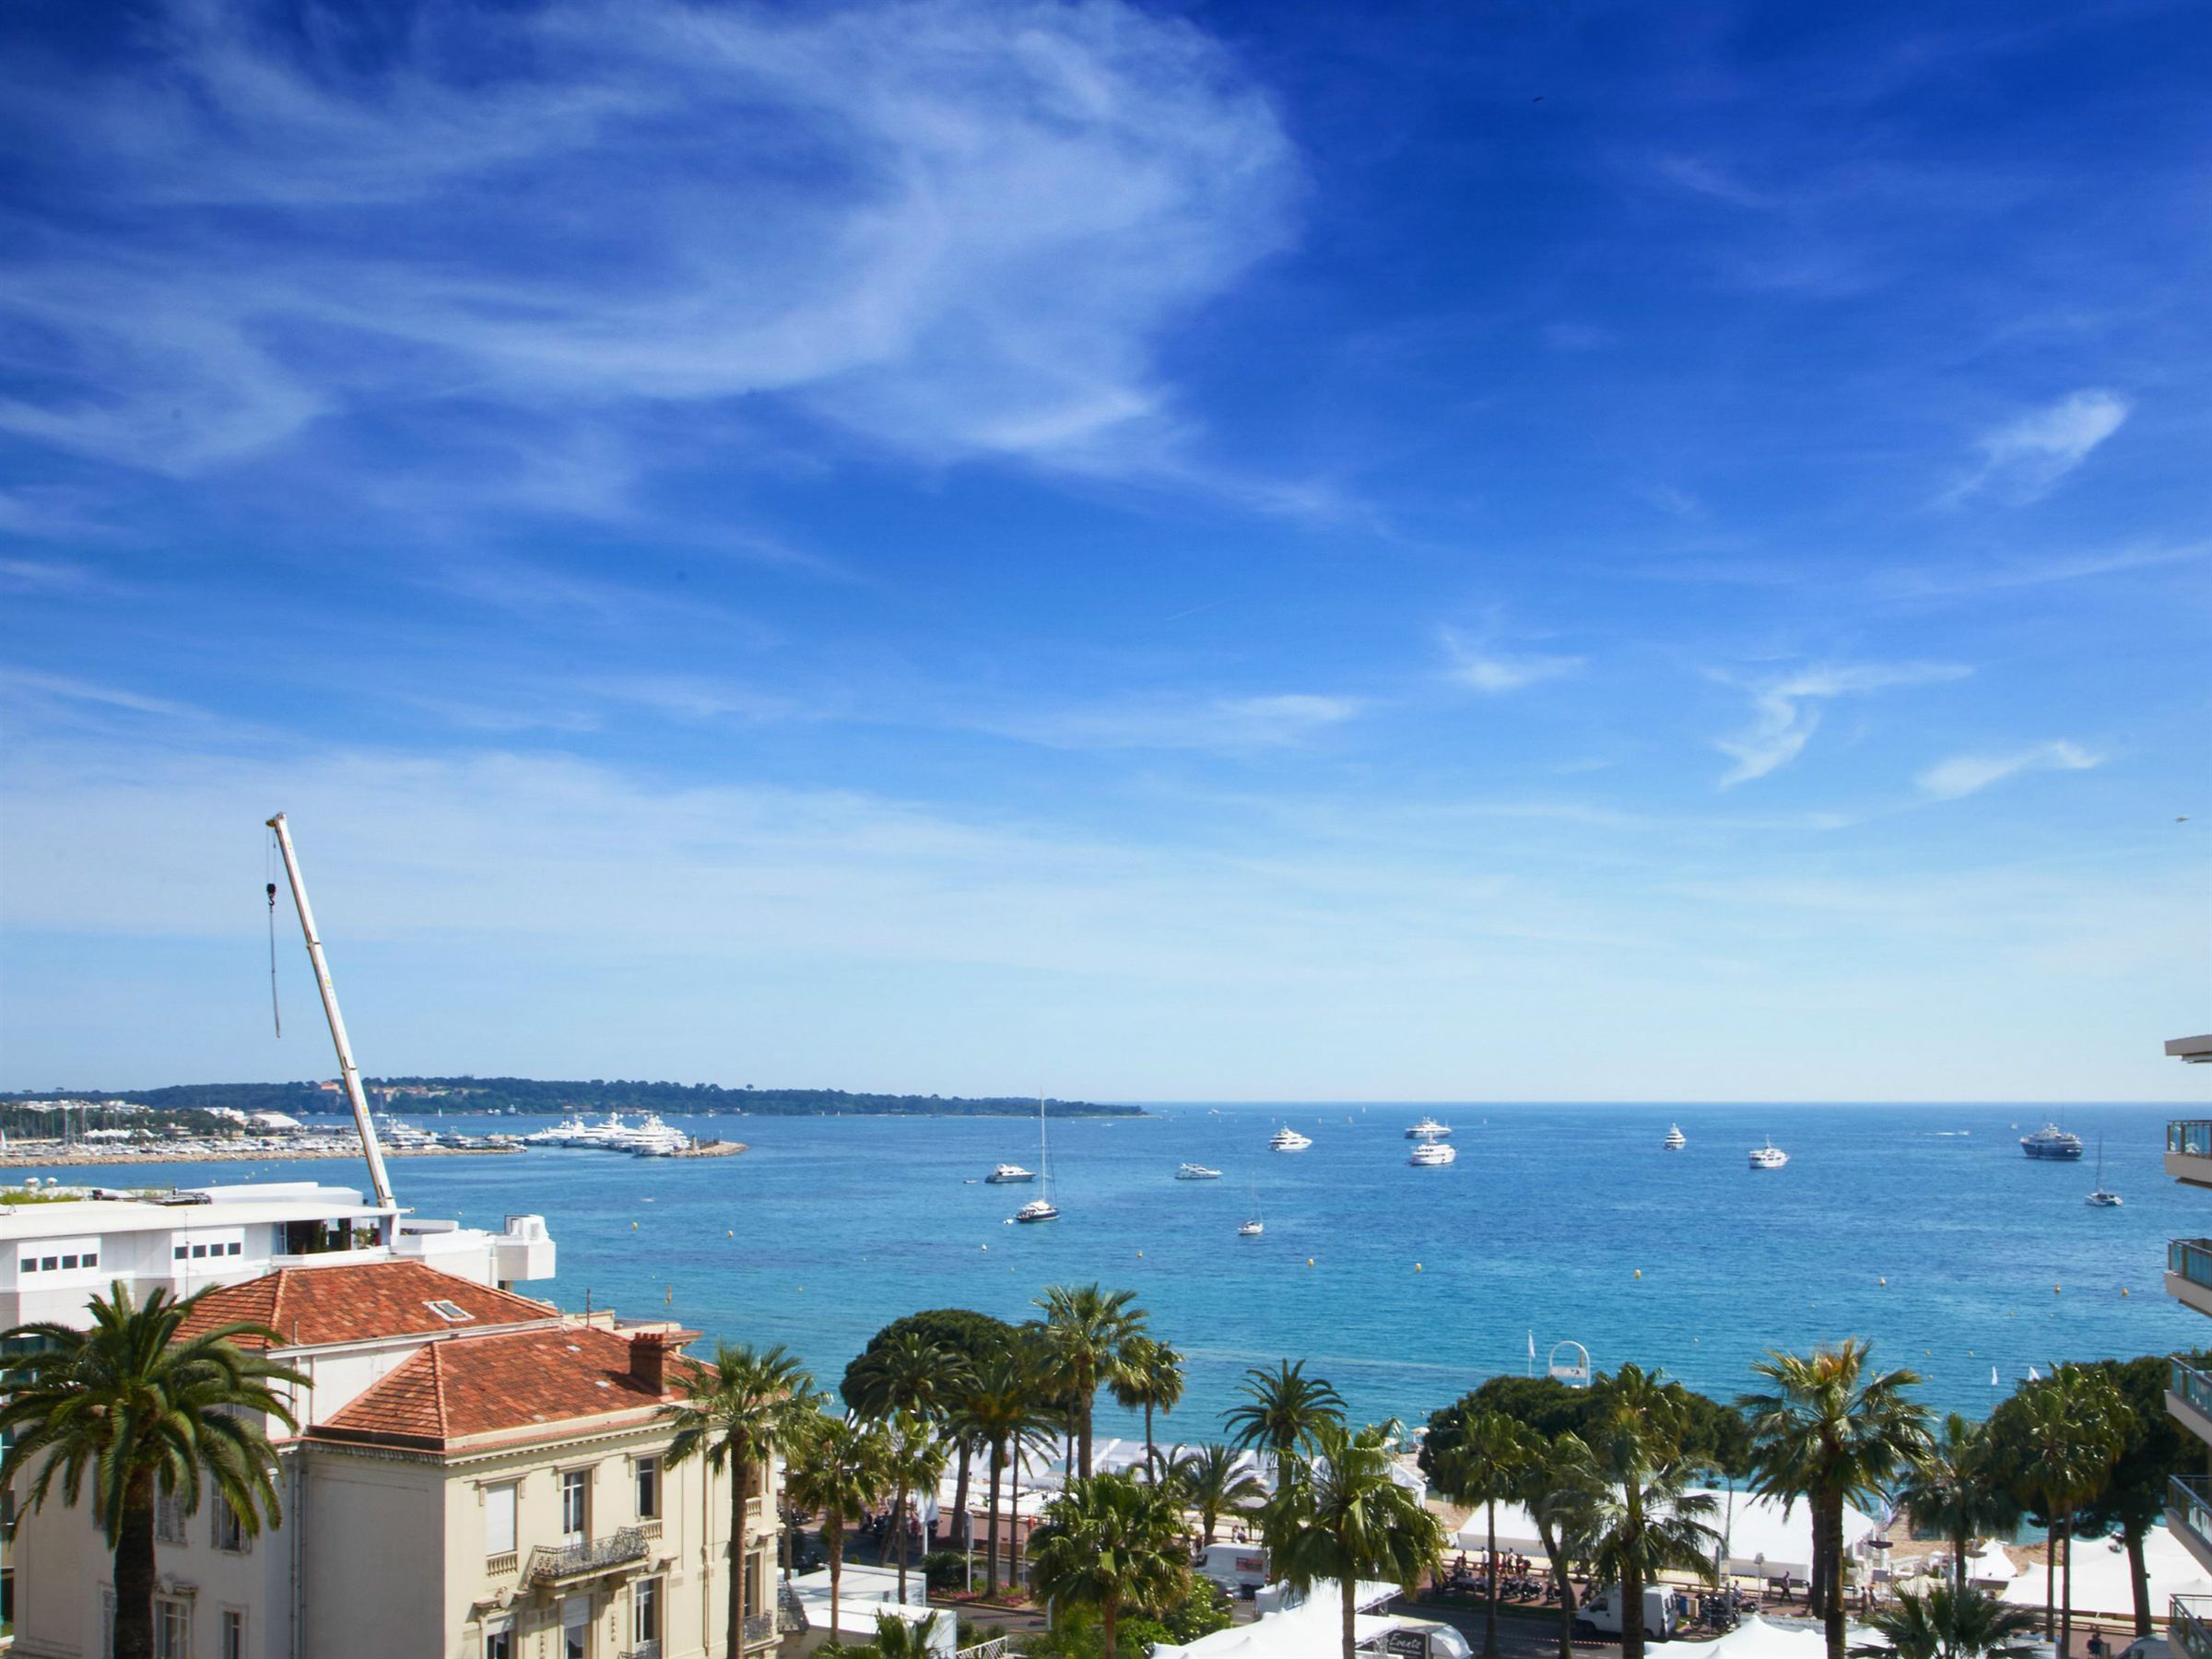 Appartamento per Vendita alle ore La Croisette - 4 bedroomed apartment with amazing sea views Cannes, Provenza-Alpi-Costa Azzurra, 06400 Francia